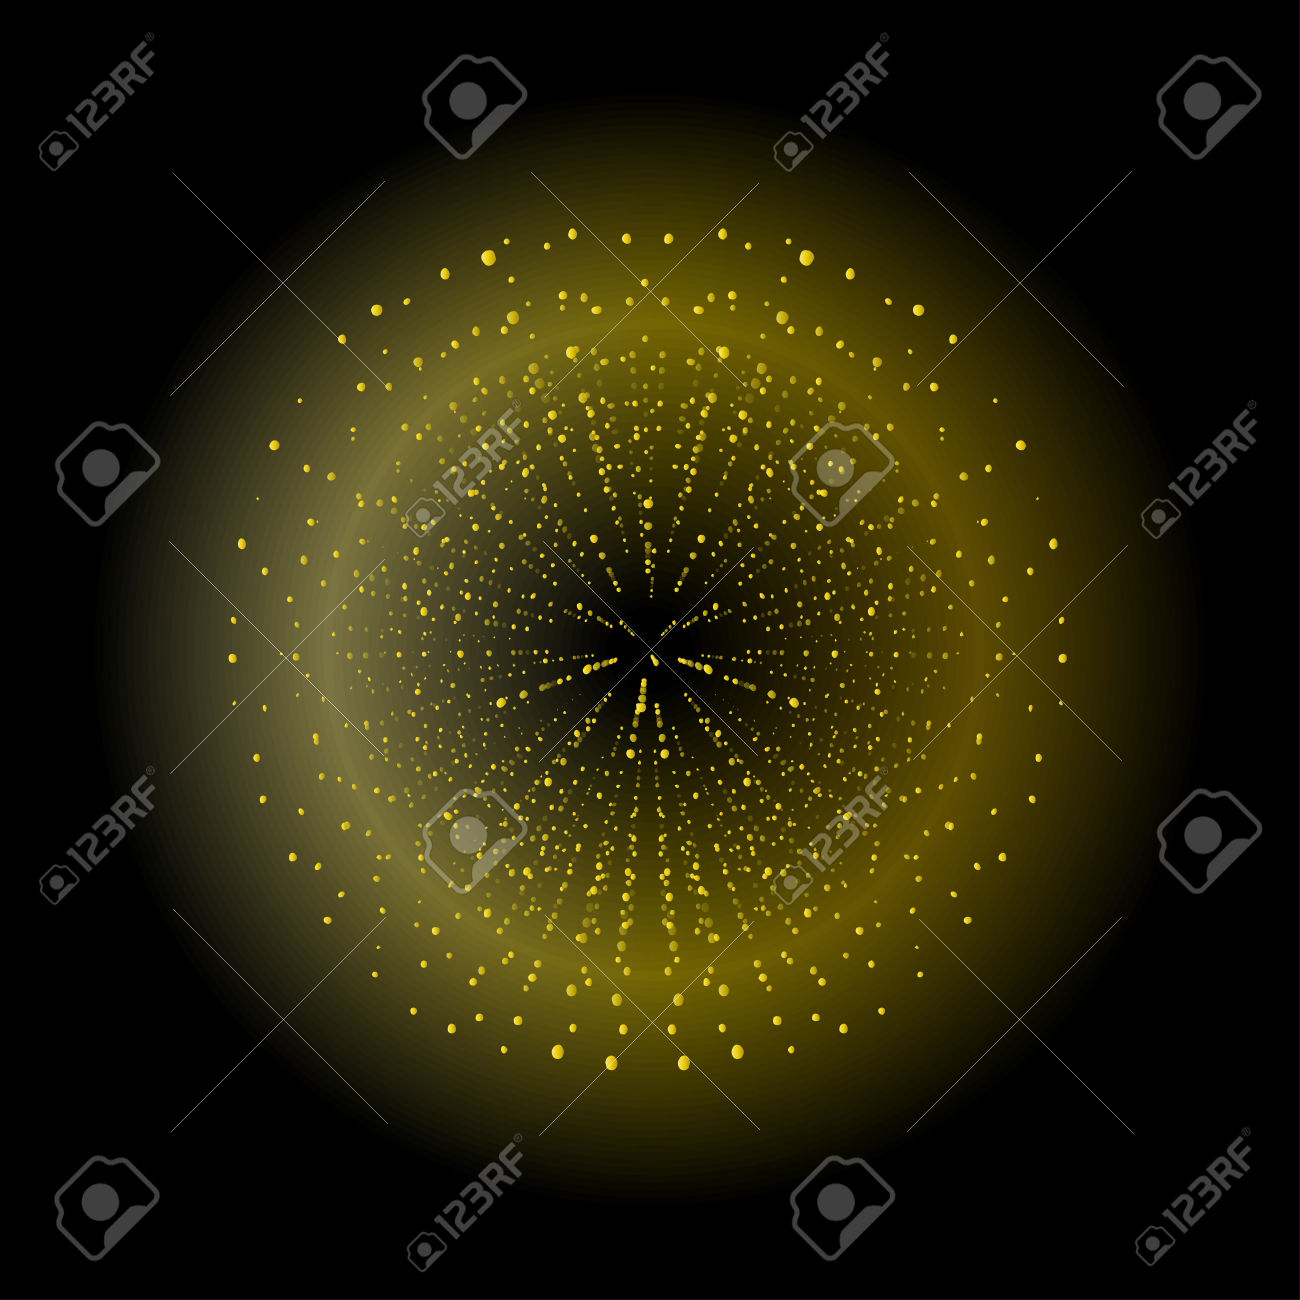 Space Sparks Spray Shiny Explosion. Yellow Color Salute. Vector.